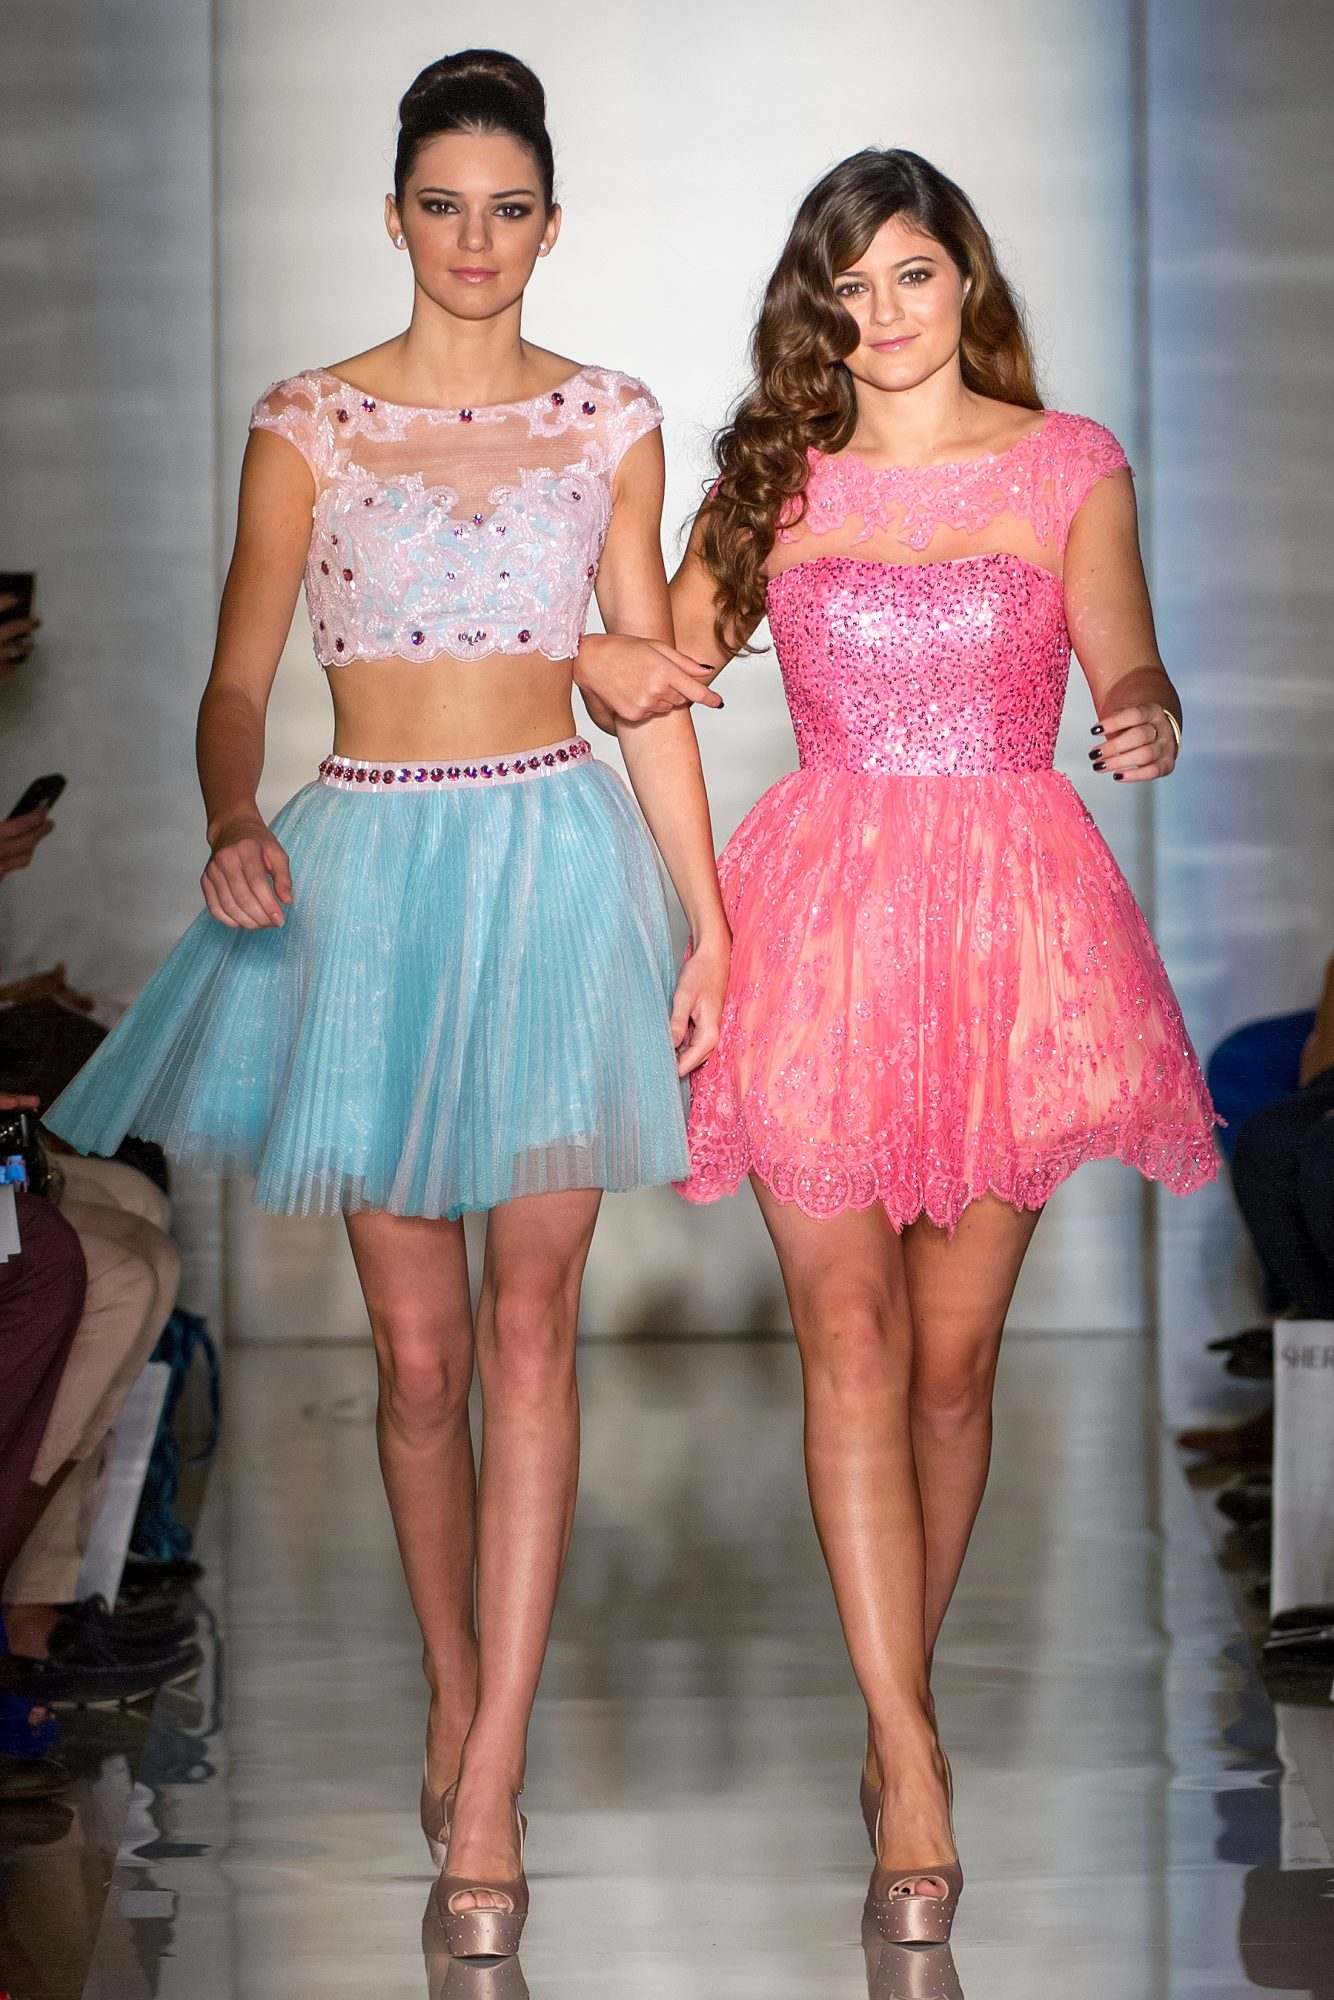 Evening Sherri Hill - Front Row And Backstage - Spring 2013 Mercedes-Benz Fashion Week